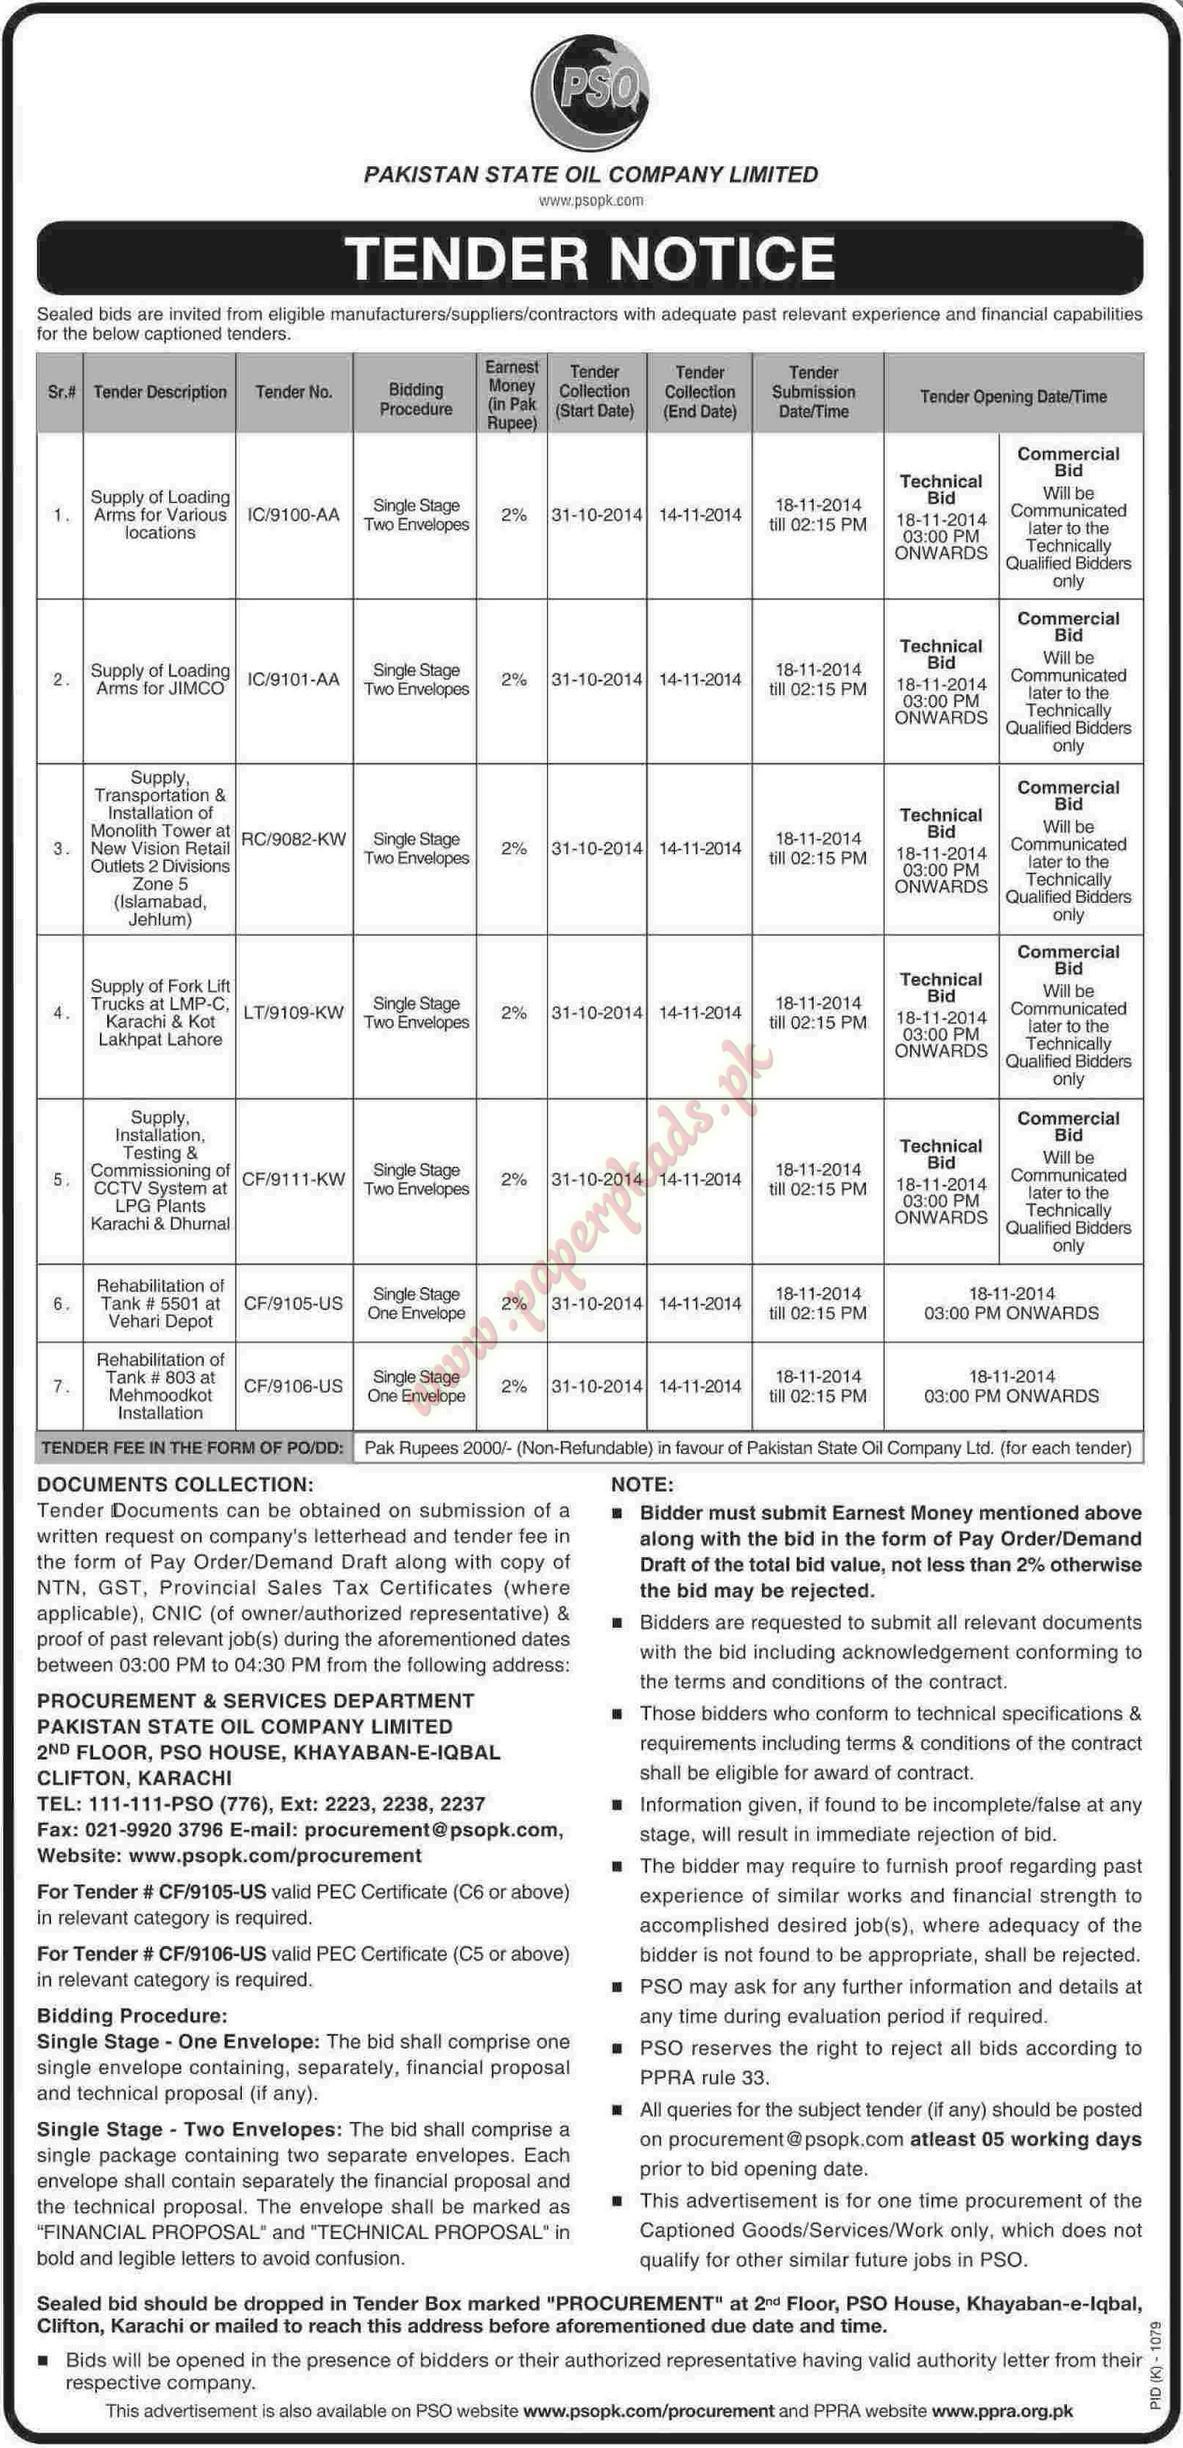 Pakistan State Oil Company Limited - Dawn Tender 31 October 2014